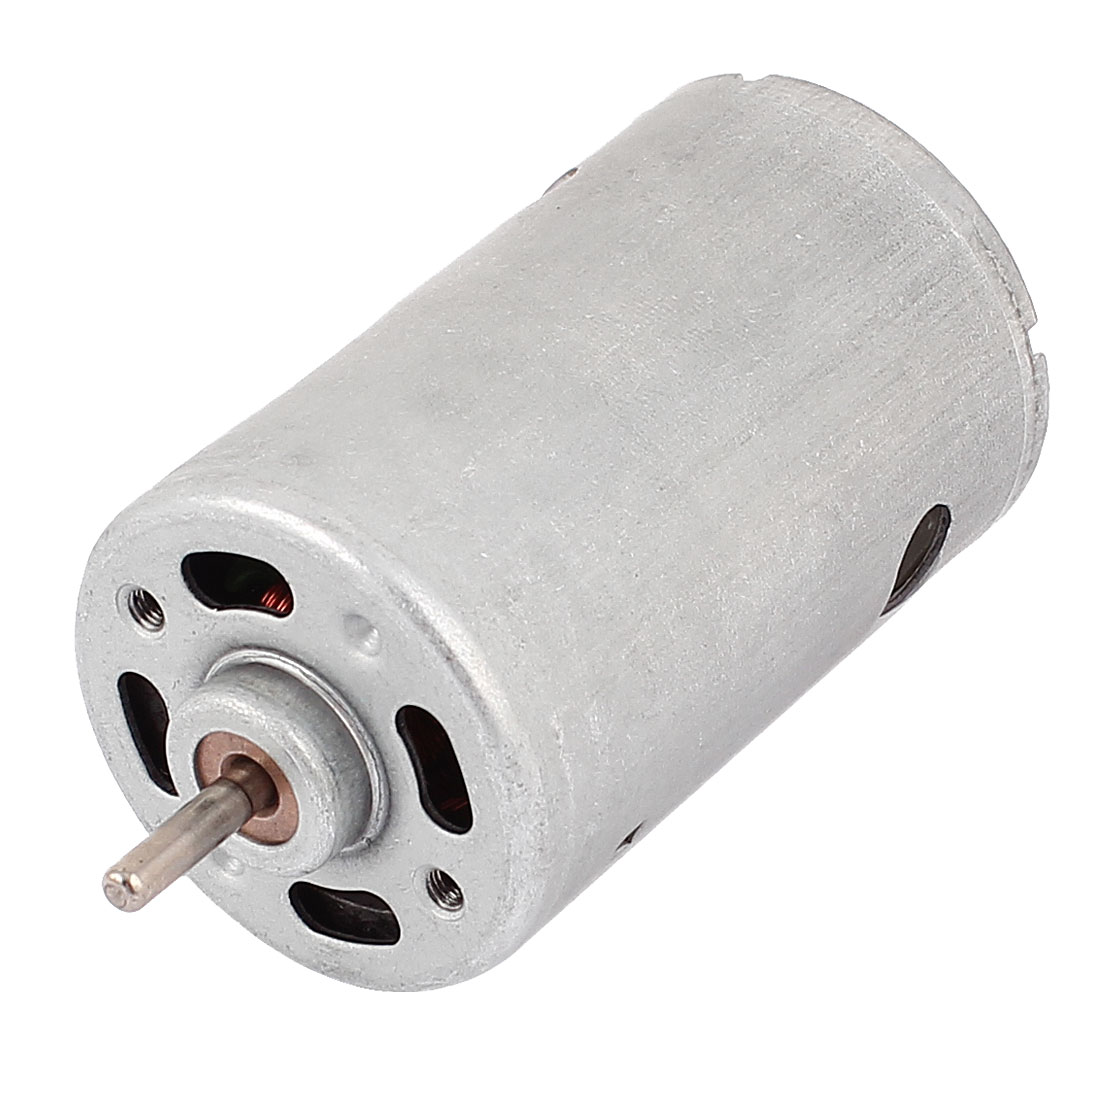 DC 12V 5500RPM Cylindrical Miniature Machine Tool Magnetic Motor R555